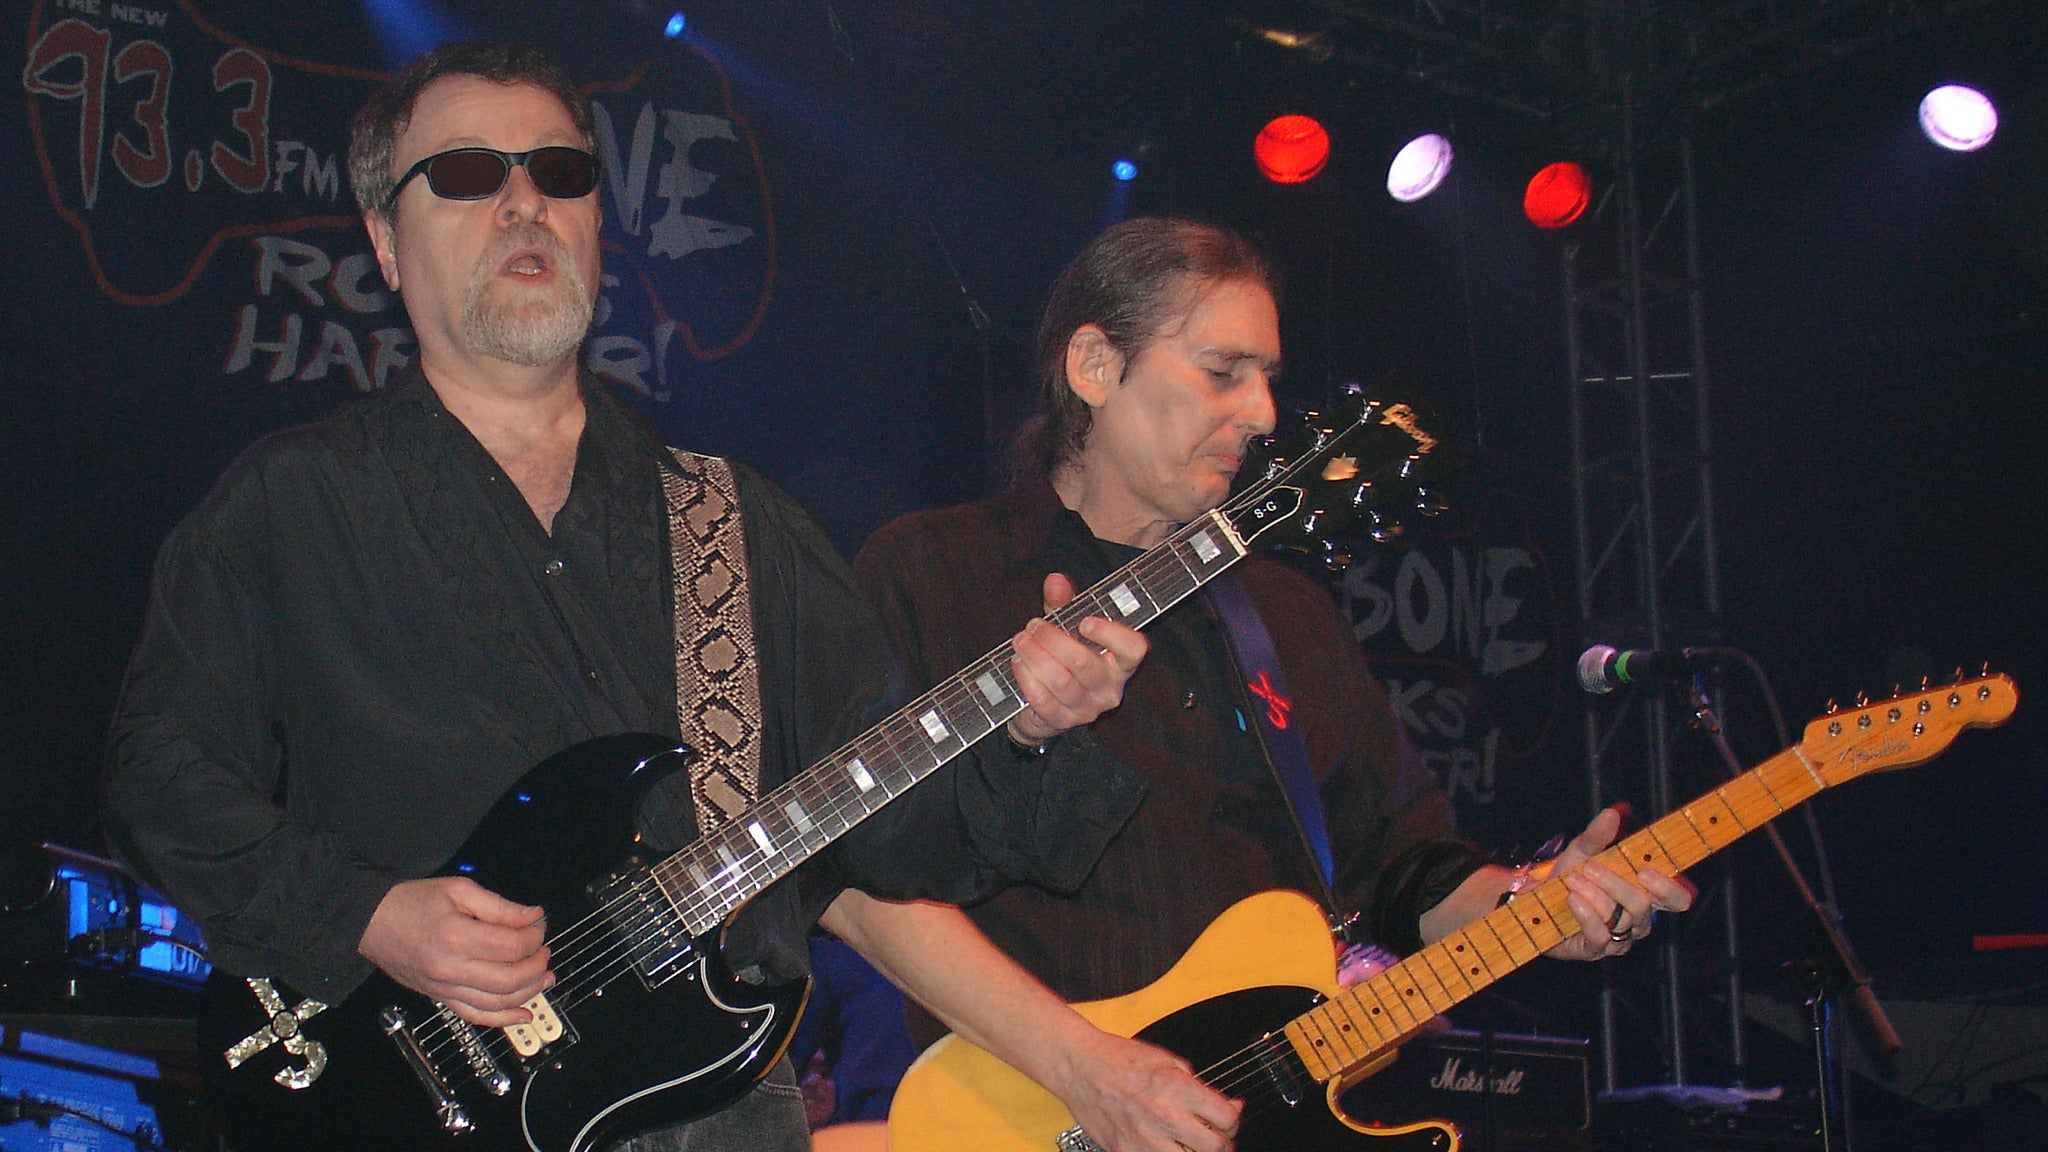 Blue Oyster Cult at The Cave